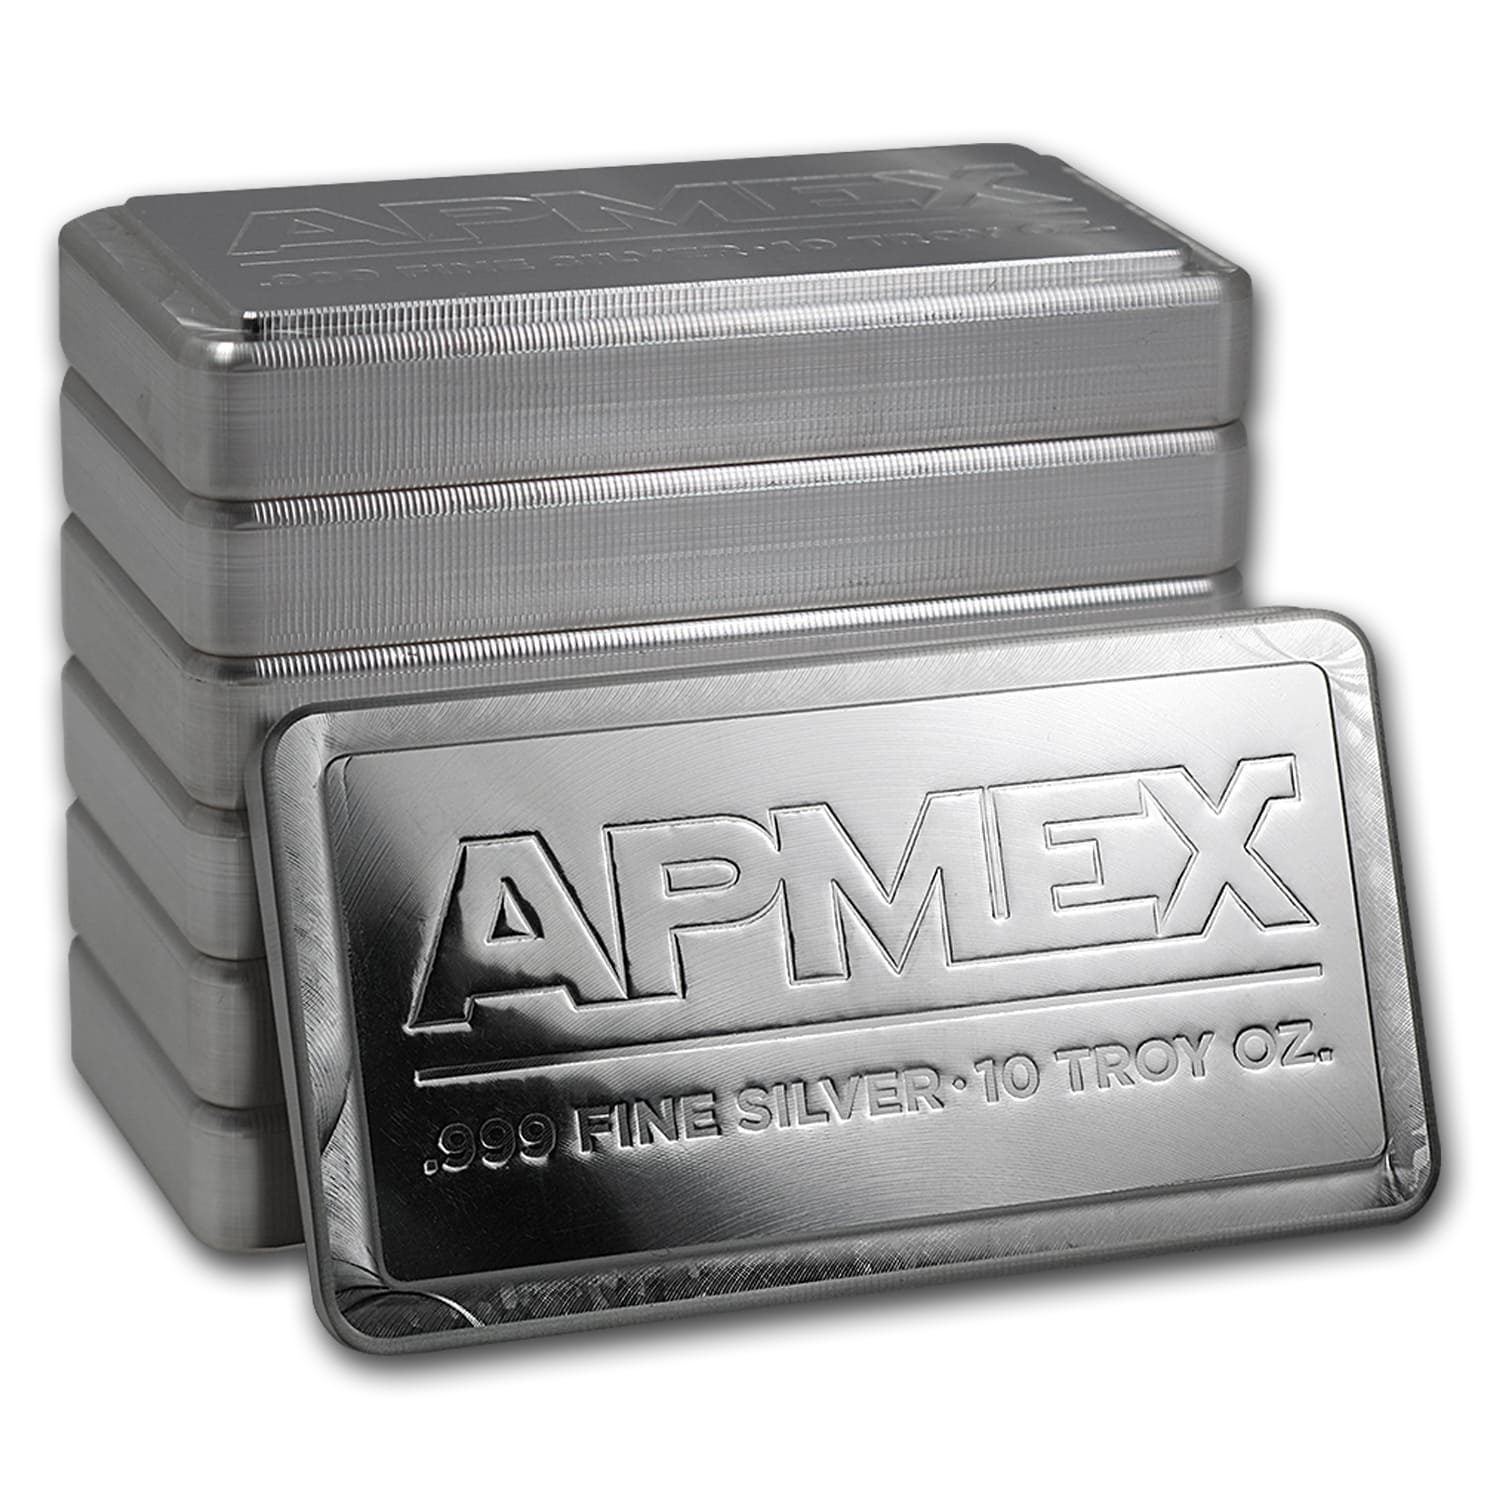 10 oz Silver Bar - APMEX (Stackable)